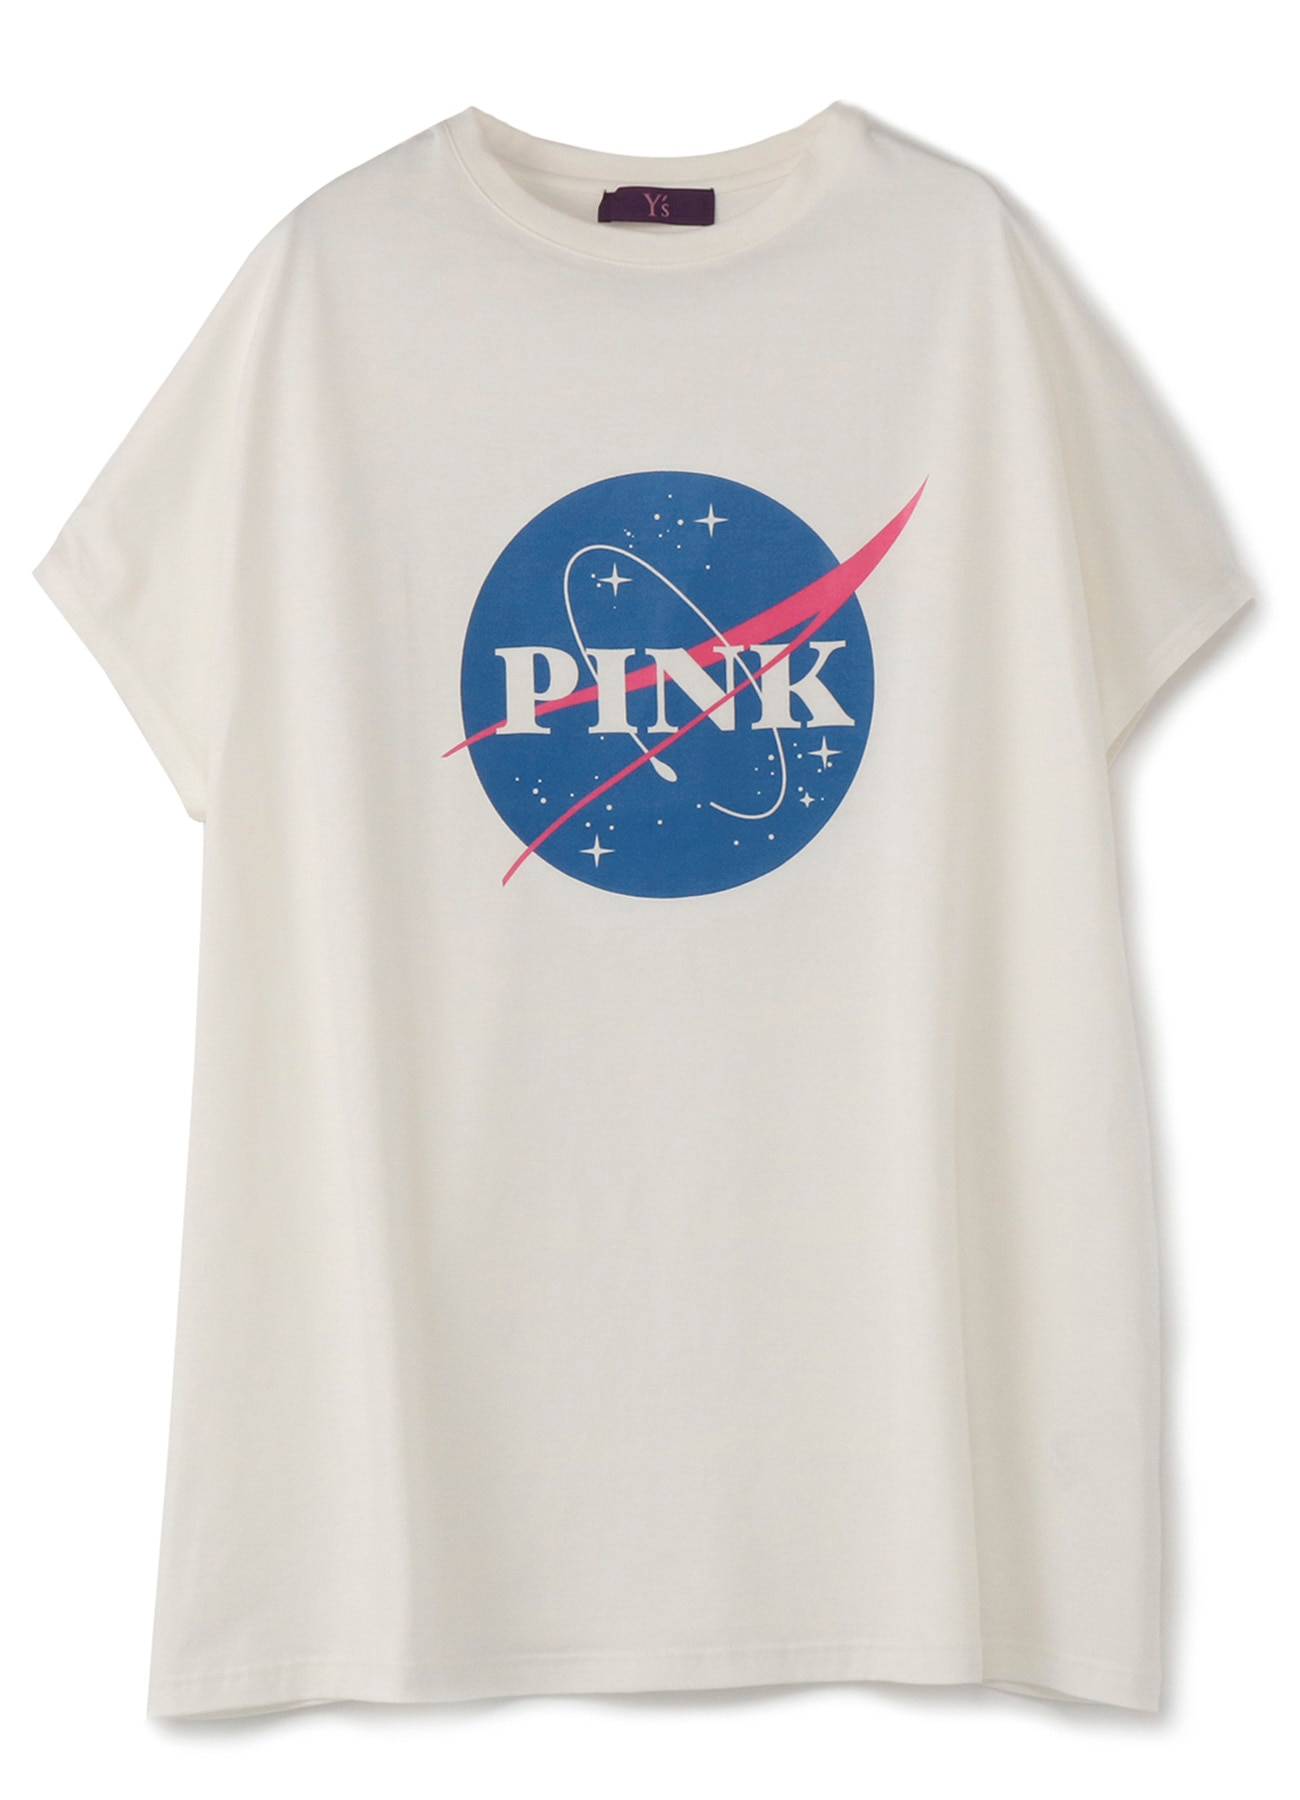 PINKプリントBIGTシャツ